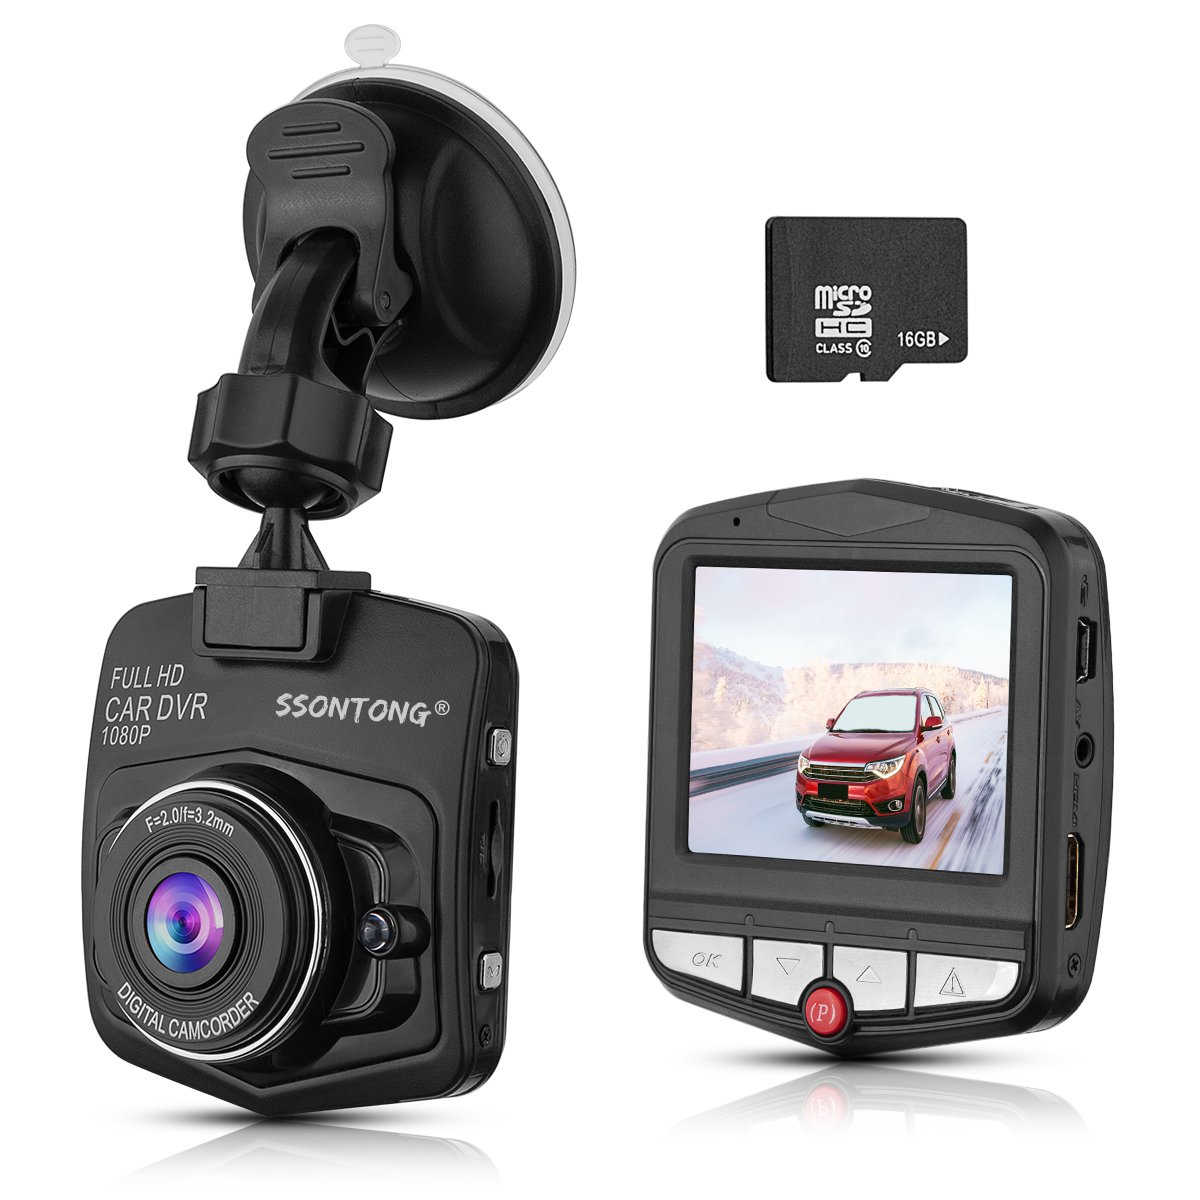 """Dash Cam,Ssontong Mini Car Dashboard Camera, Full HD 1080P 2.31"""" Screen 140 Degree Wide Angle Lens Vehicle On-Dash Video Recorder with G-Sensor,Parking Monitoring,Recording and 16GB SD Card Included"""